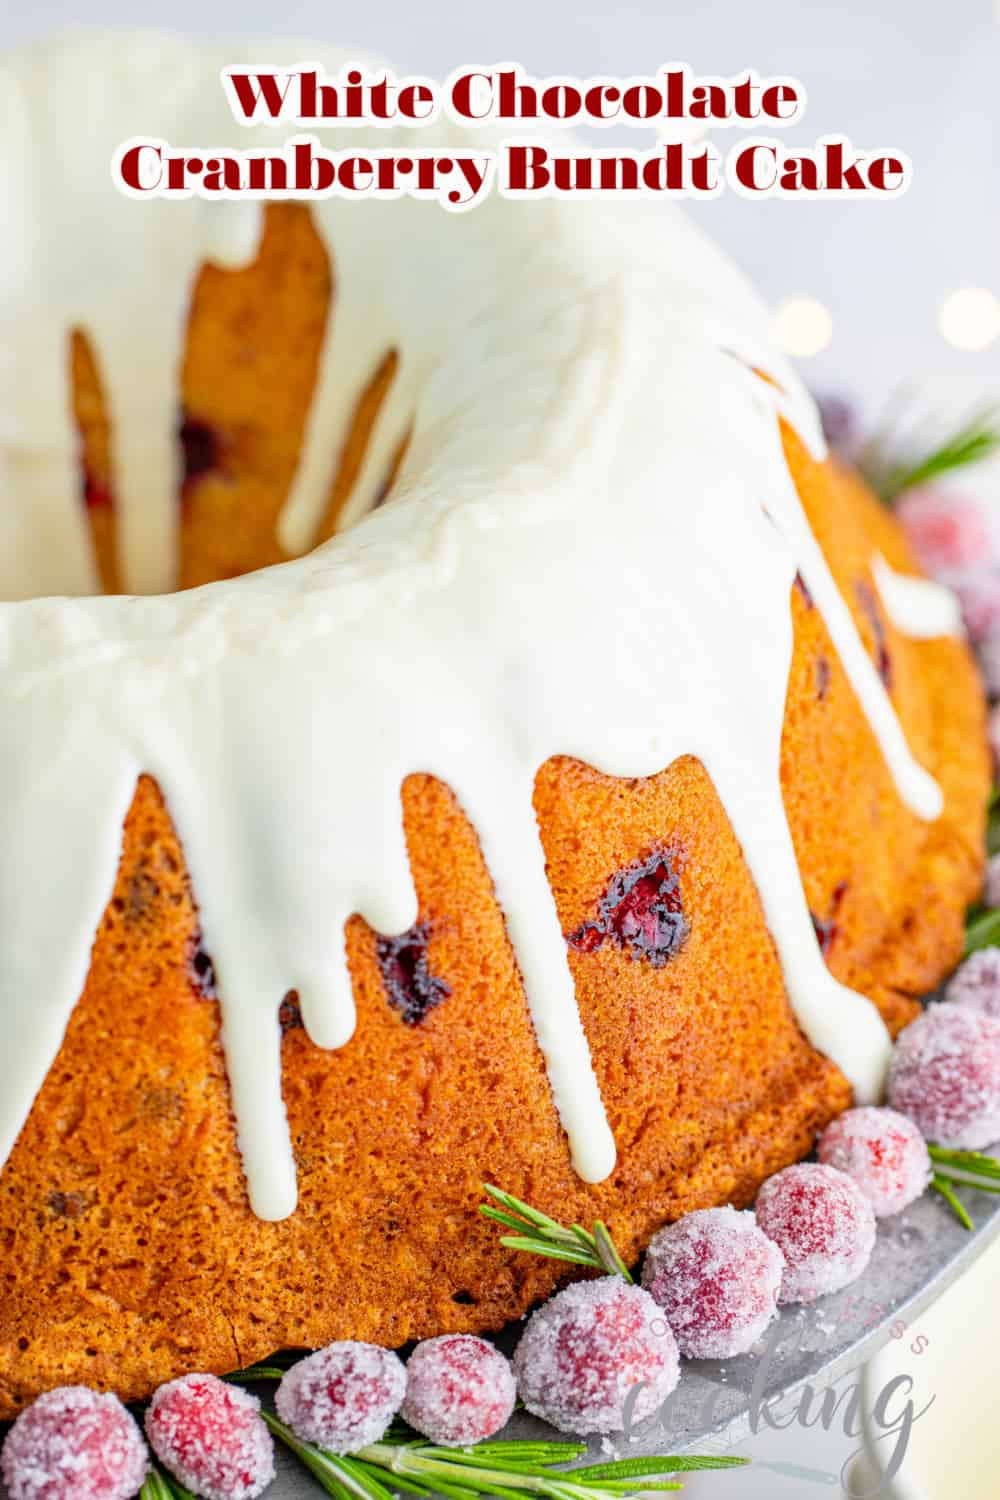 White Chocolate Cranberry Bundt Cake